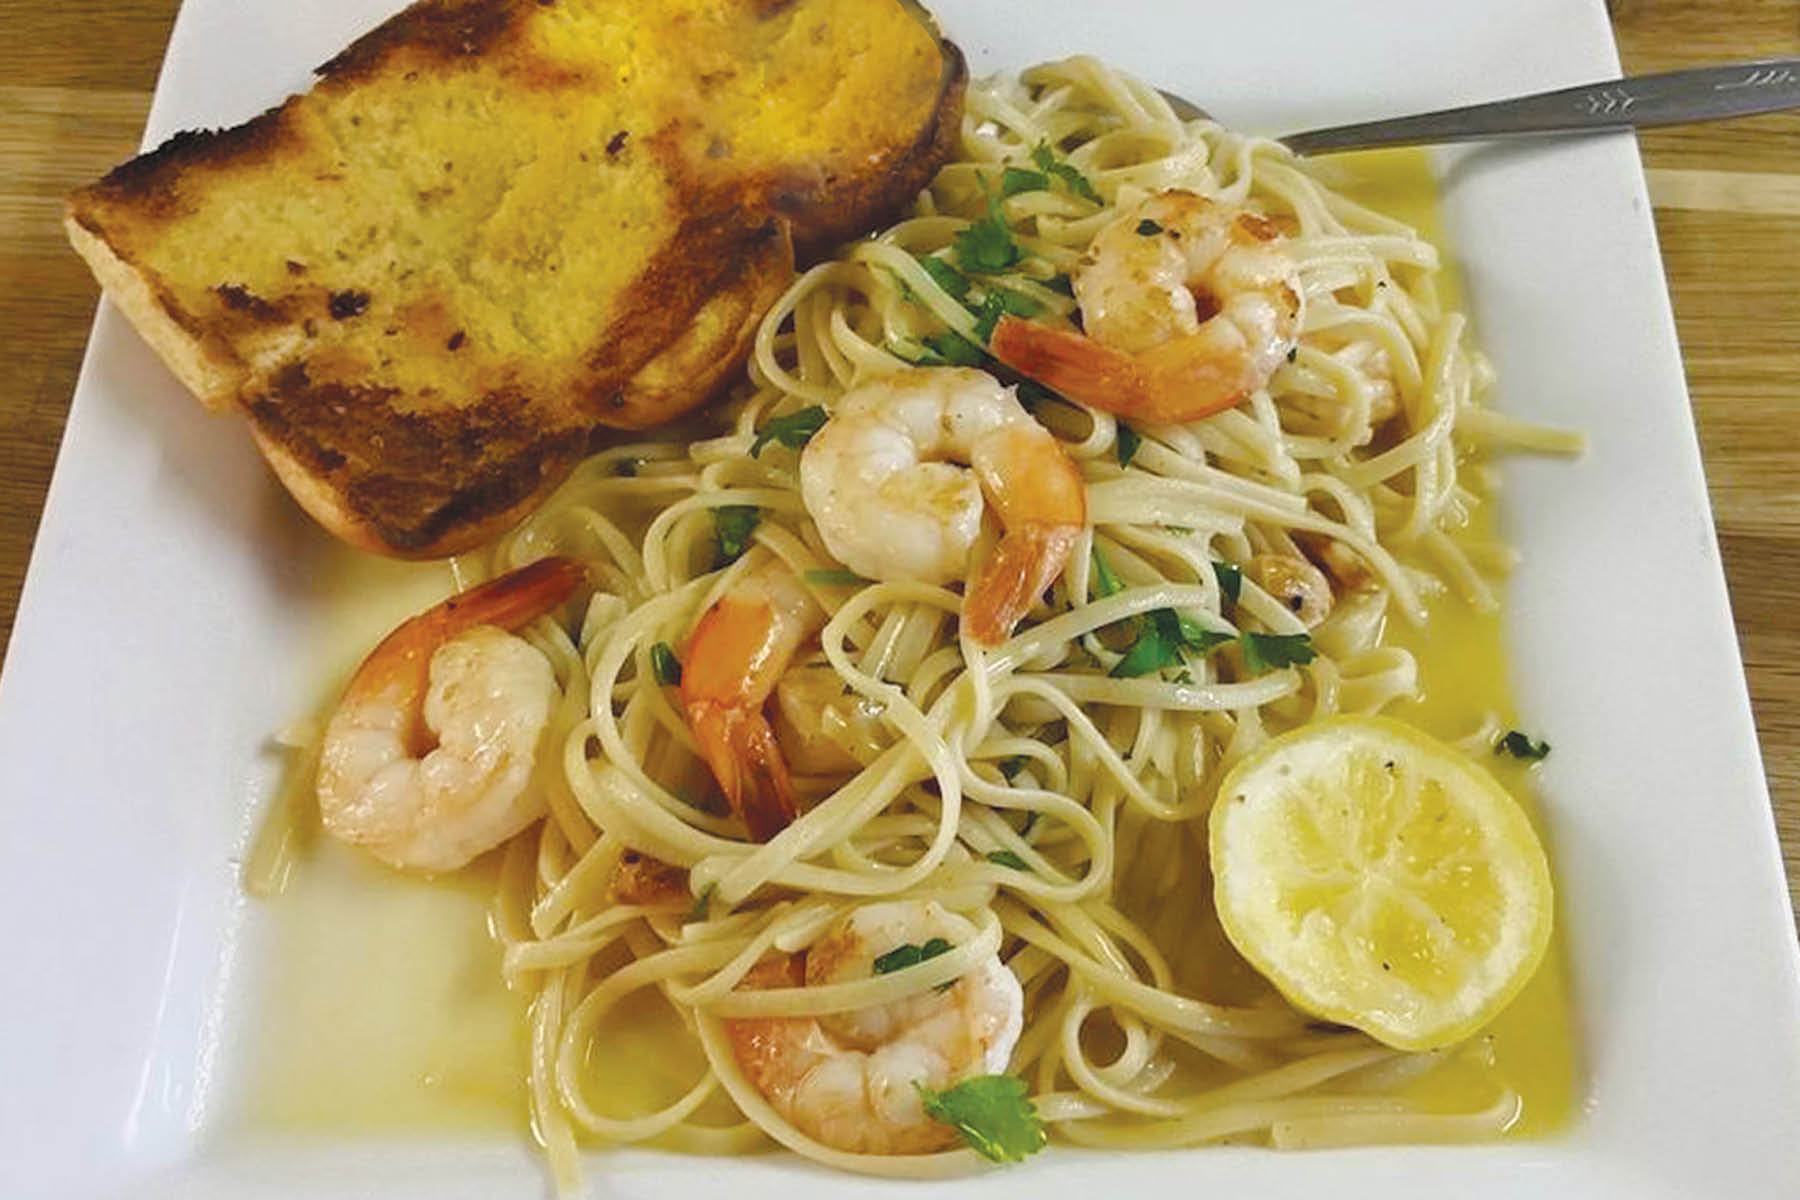 local seafood, homemade, fresh dishes, fresh ingredients